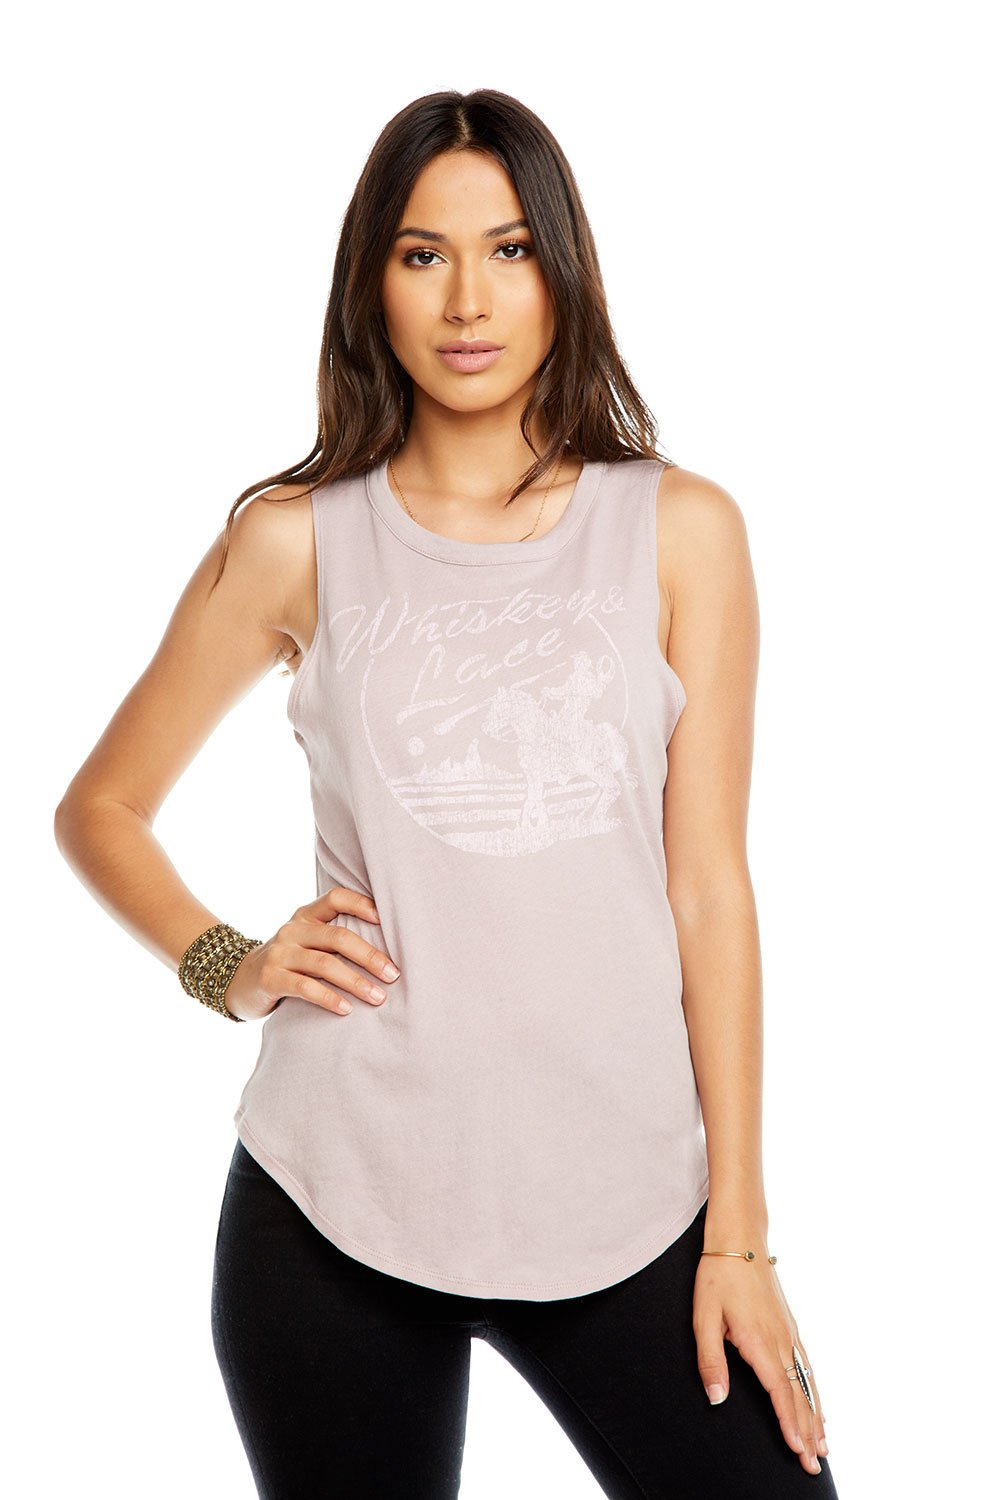 Whiskey and Lace Muscle Tank